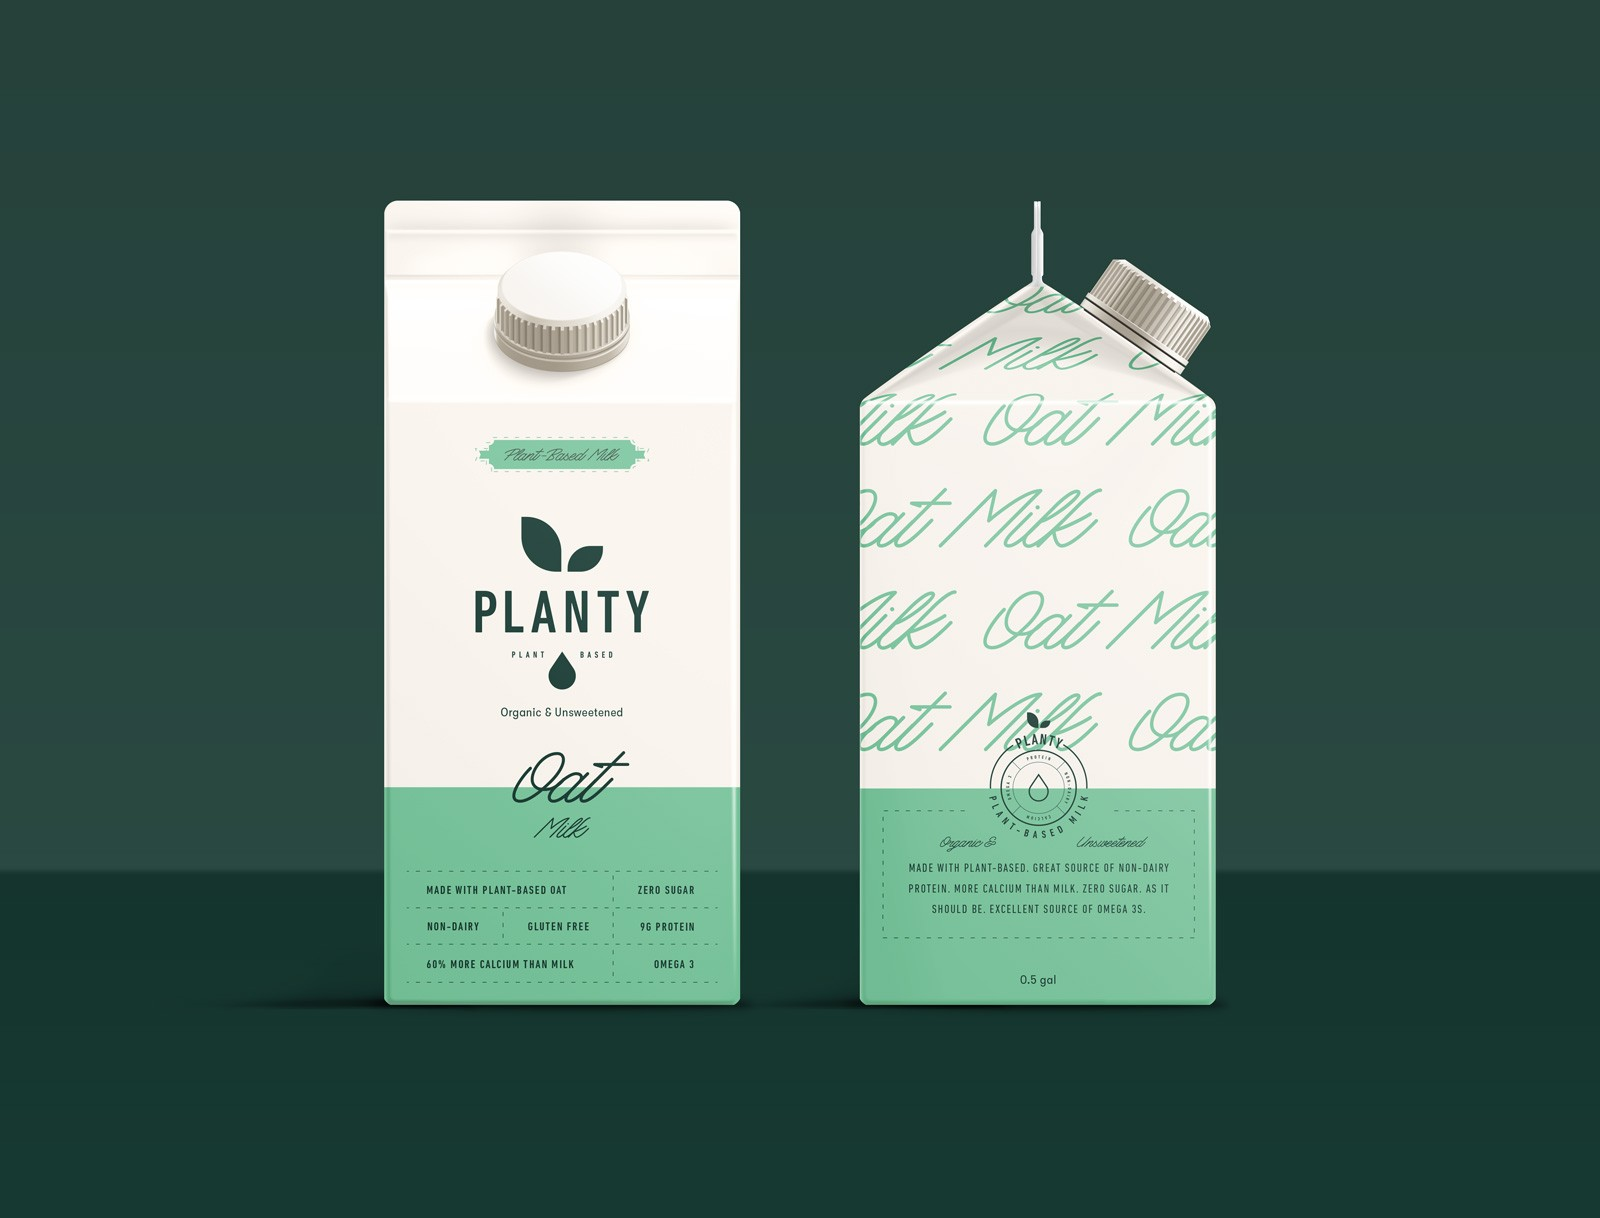 Branding and Packaging for Planty Plant Based Milk